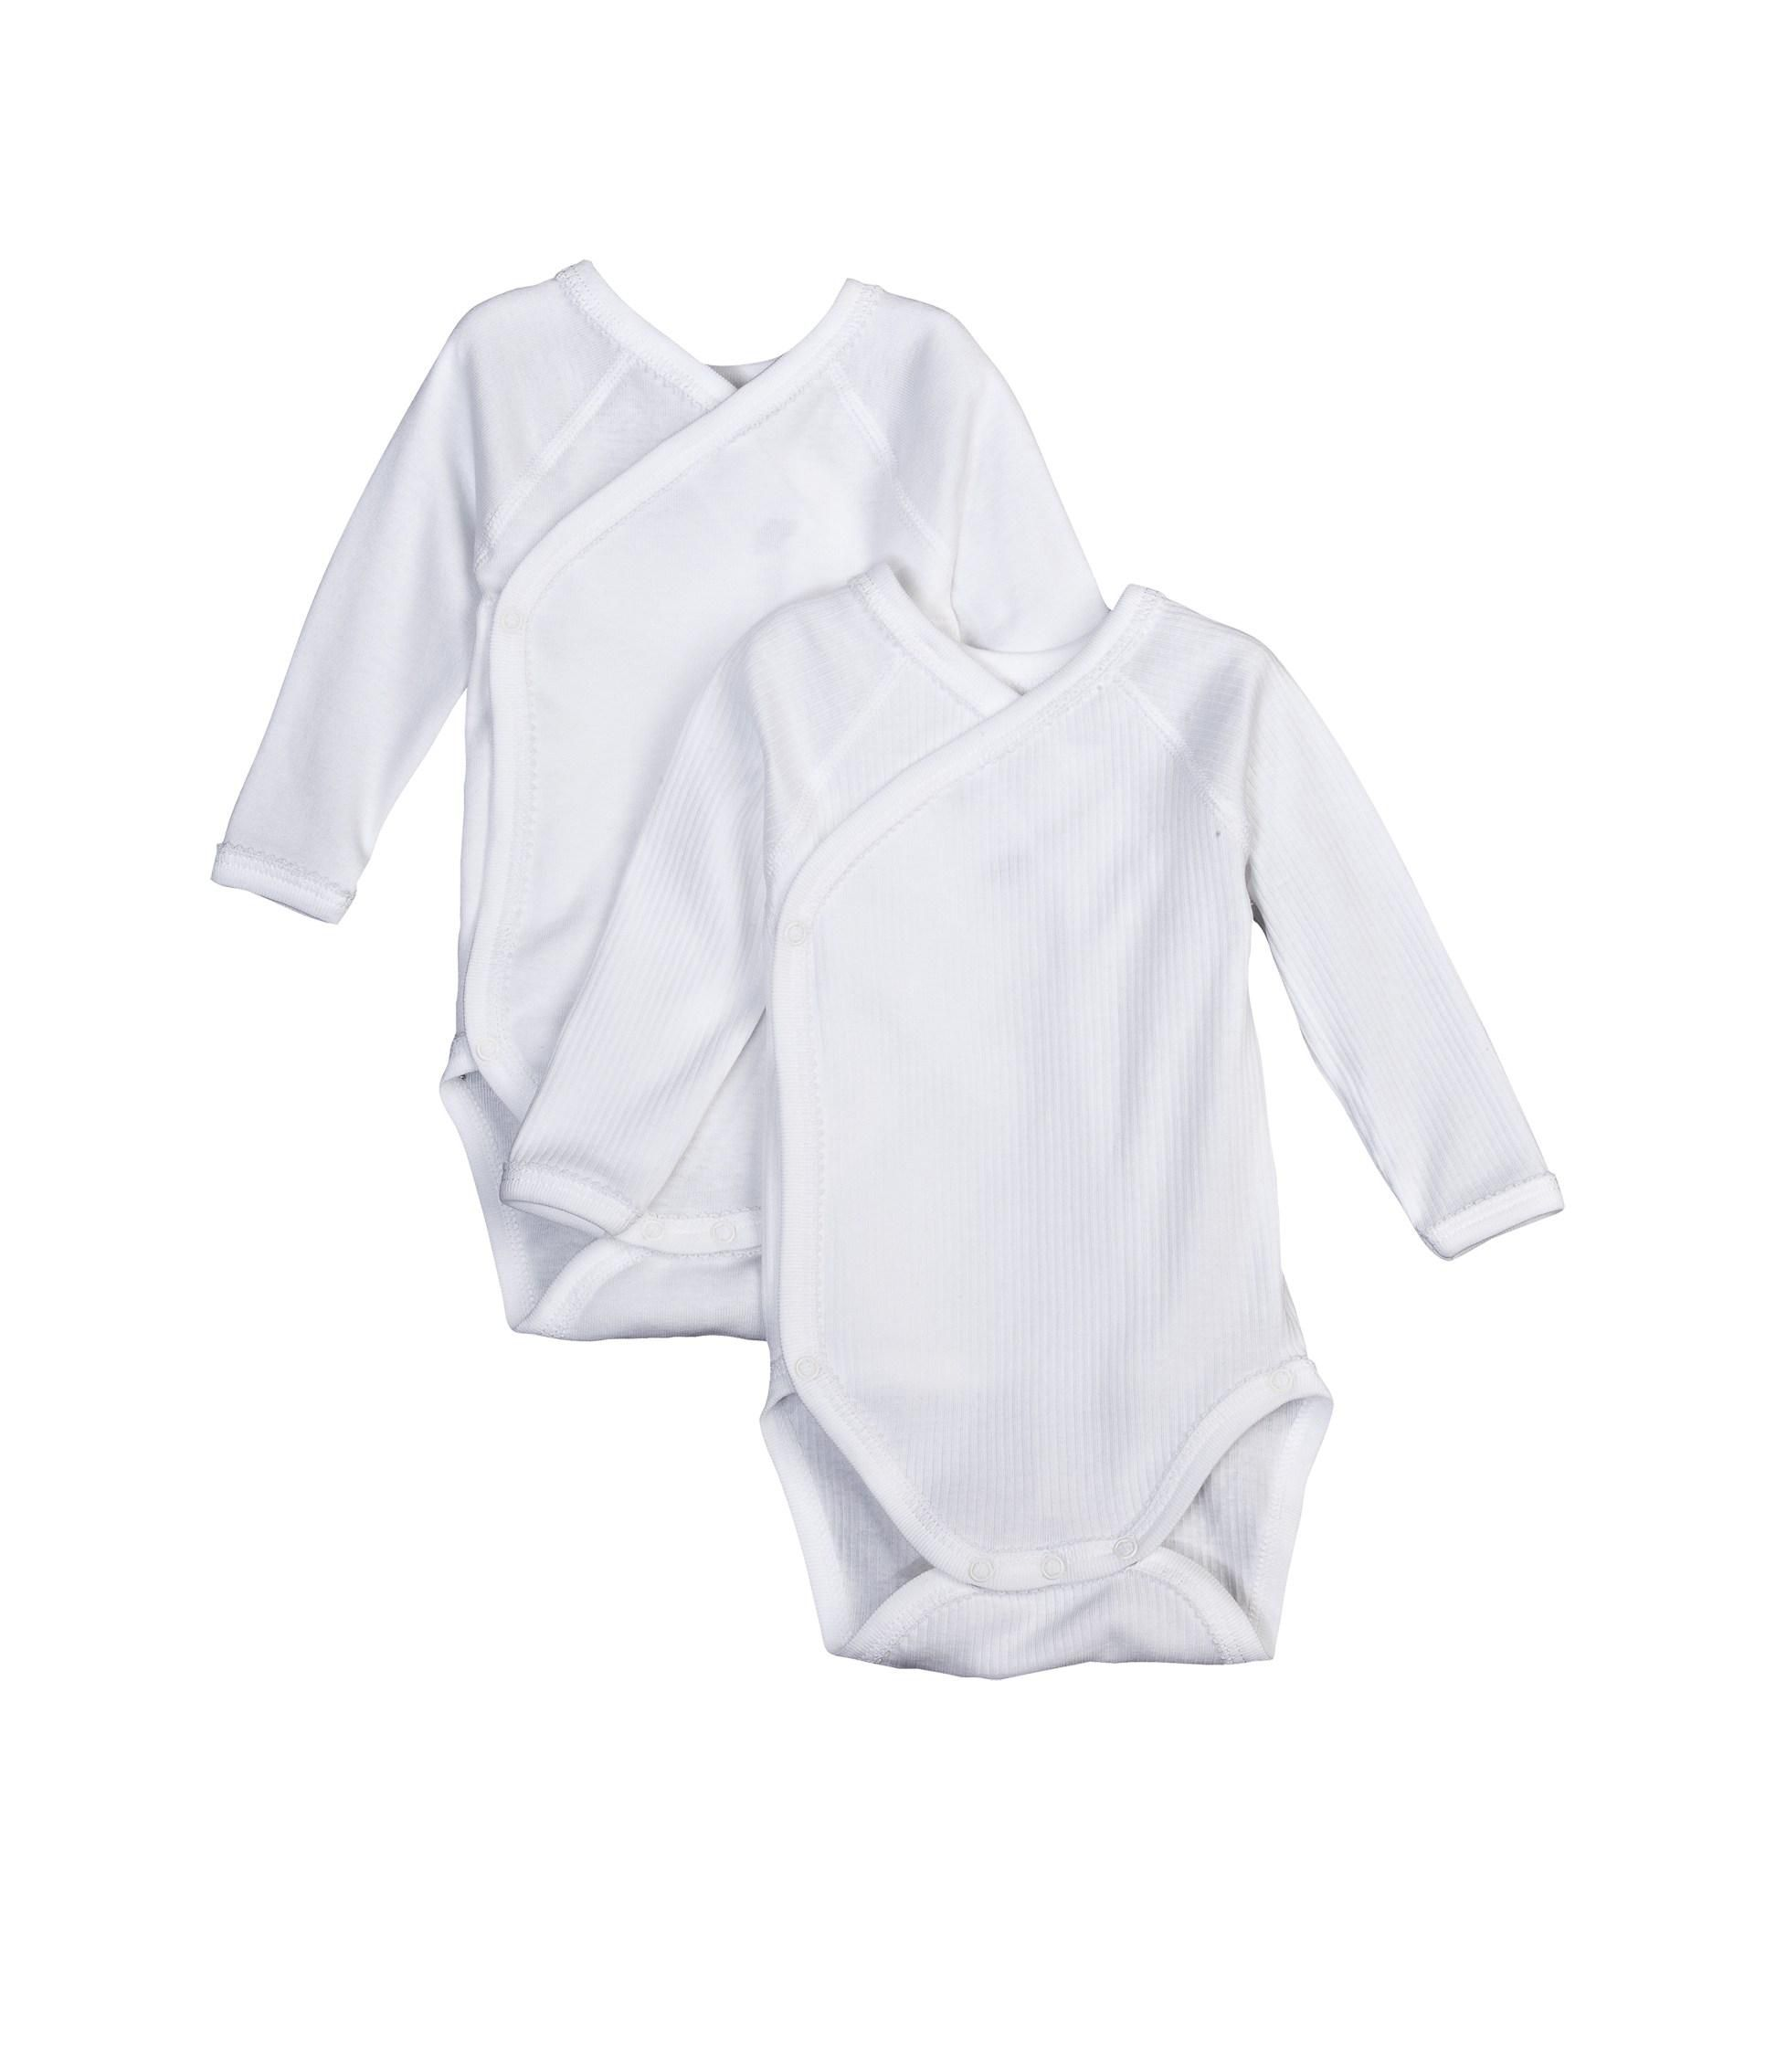 Pack of 2 newborn baby long-sleeved bodysuits